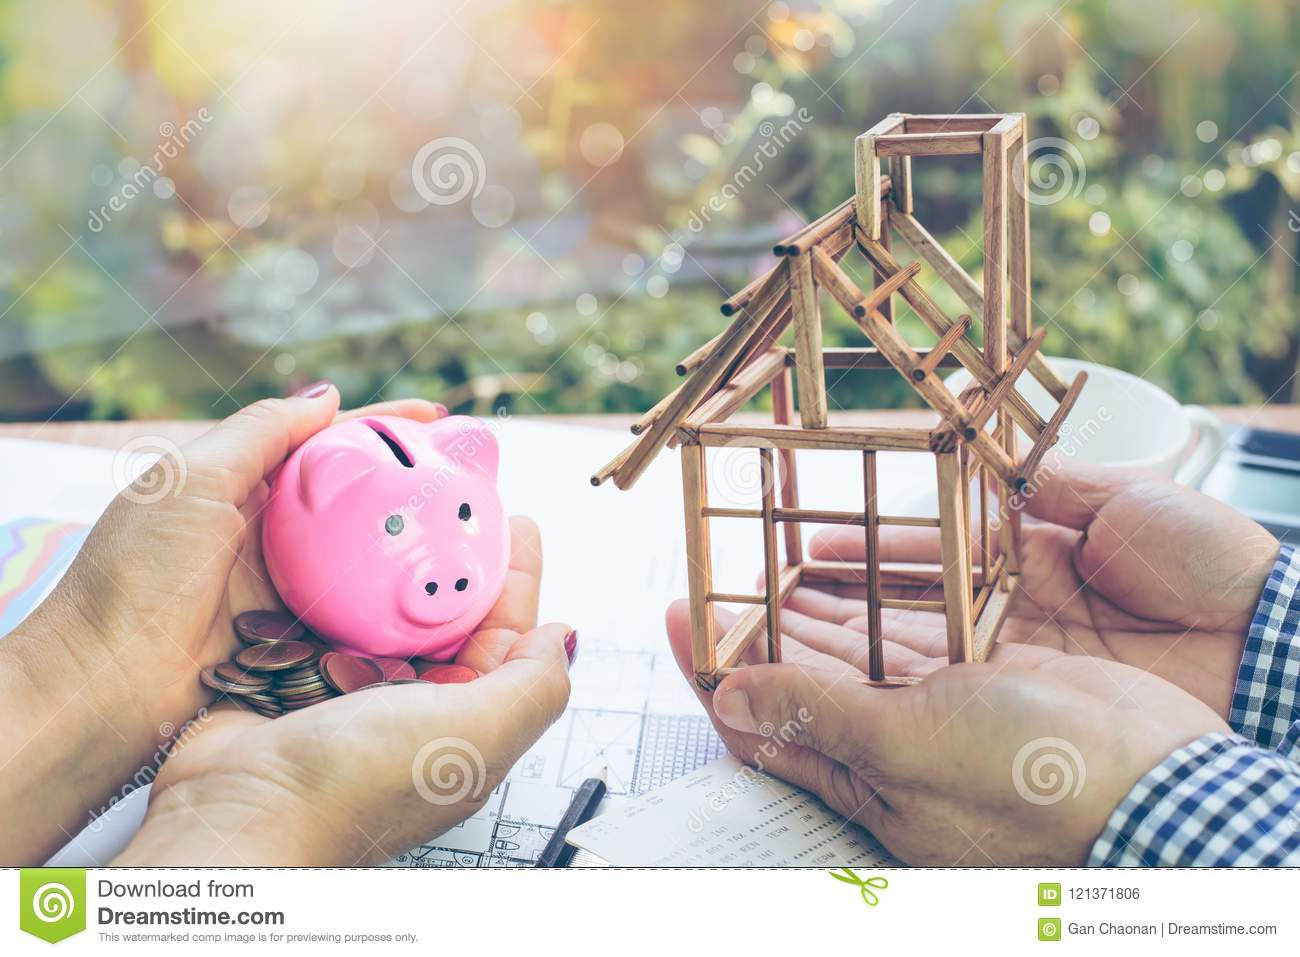 The hand of a woman holding a piggy bank and a coin in her hand and the hands of the men who are holding a model house under const